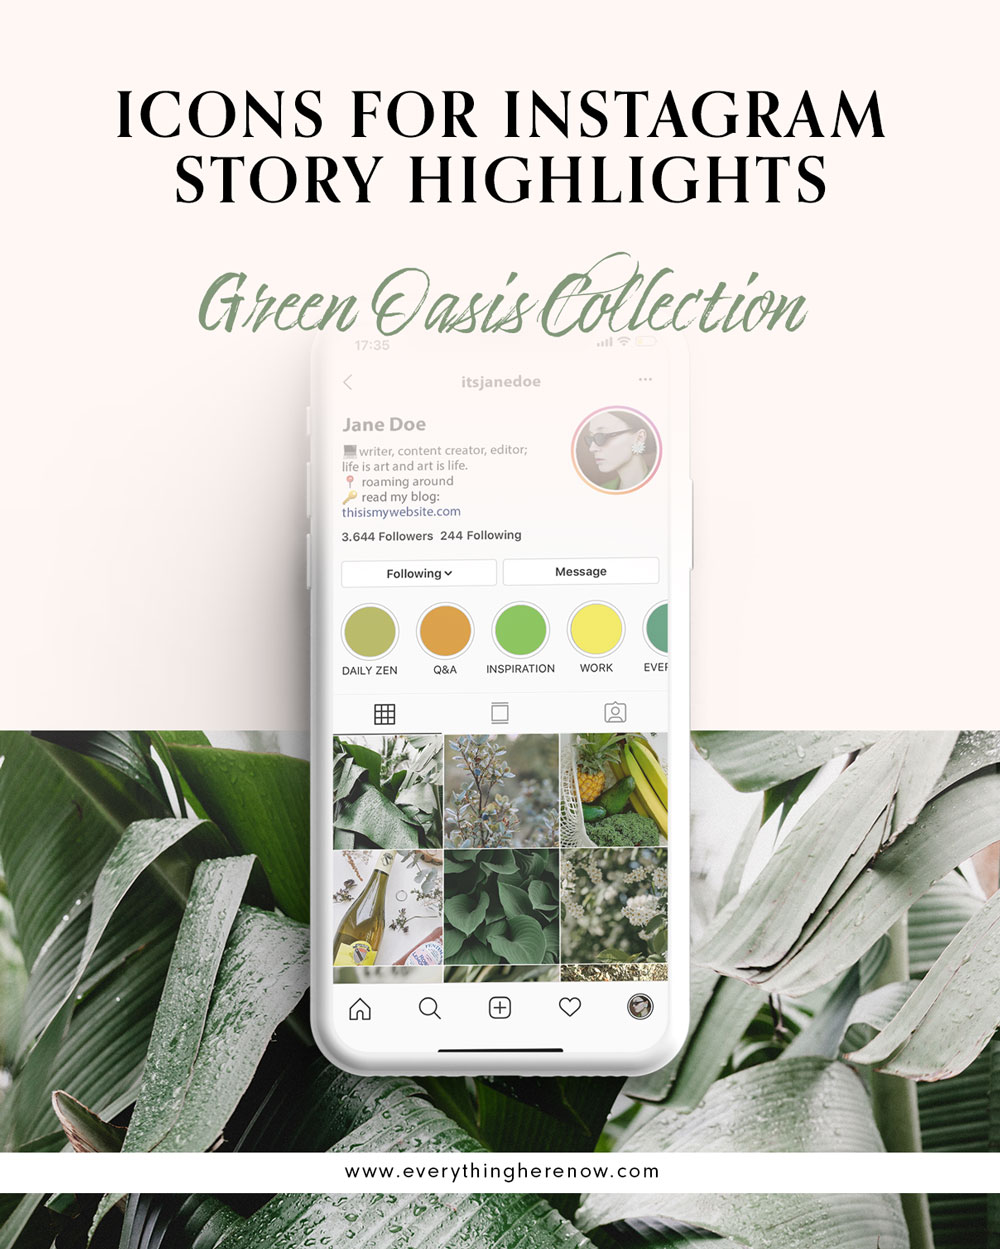 Icons for Instagram Story Highlights: Desert Heat Collection #instagram #instagramhighlights #icons Icons for Instagram Story Highlights: Green Oasis Collection #instagram #instagramhighlights #icons https://everythingherenow.com/shop/